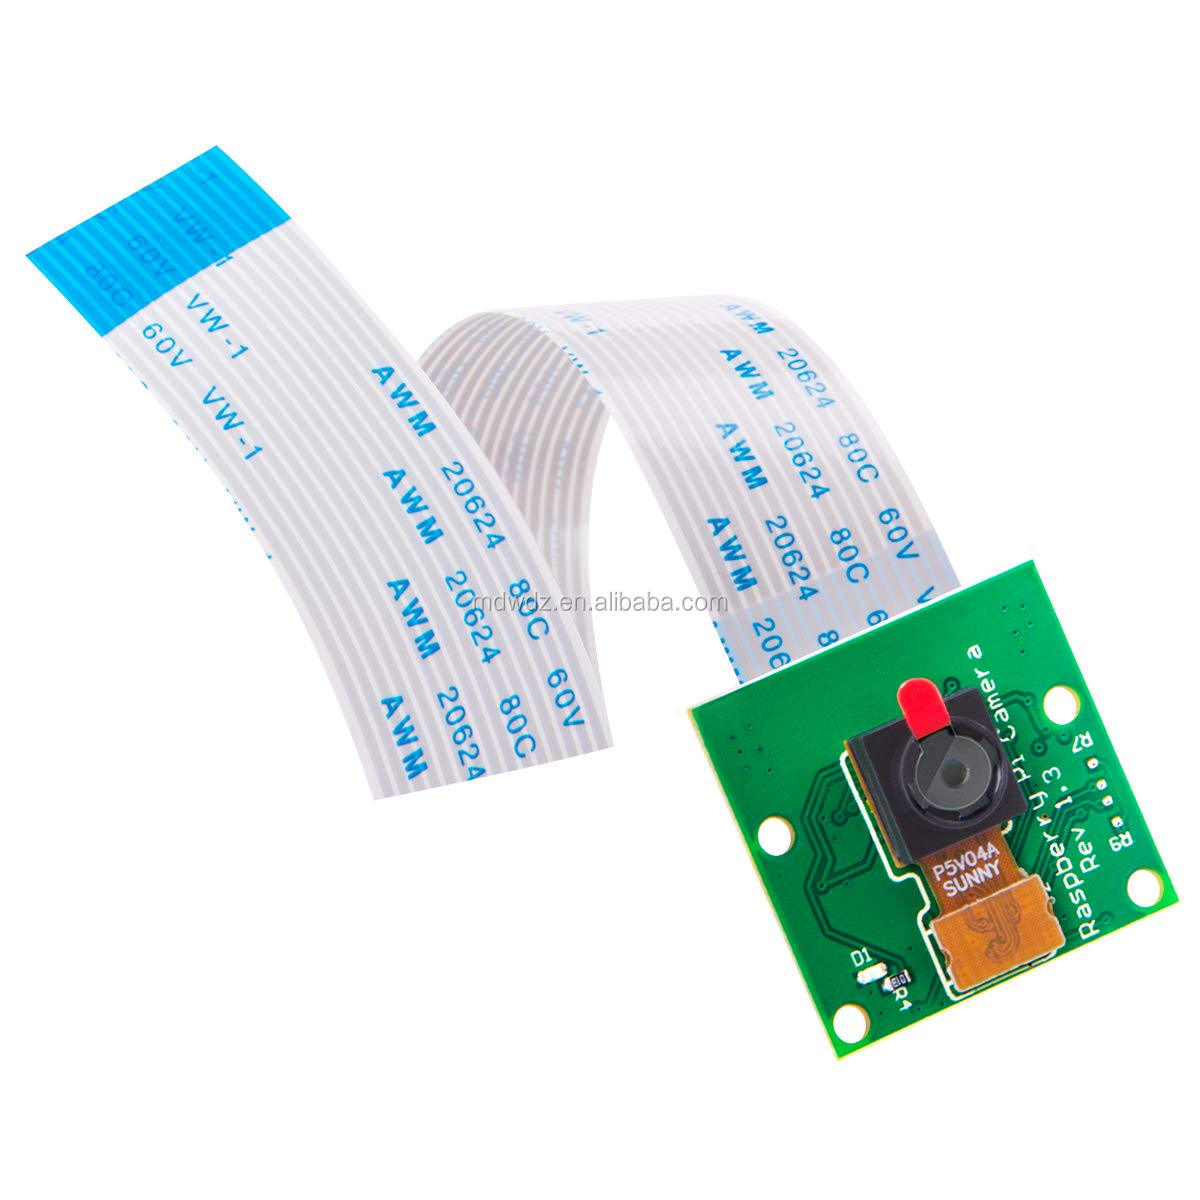 5 Megapixels Raspberry Pi Camera Module 1080p OV5647 Sensor with 6 inch 15 Pin Ribbon Cable for Model A/B/B+, Pi 2, Pi 3 and 3B+